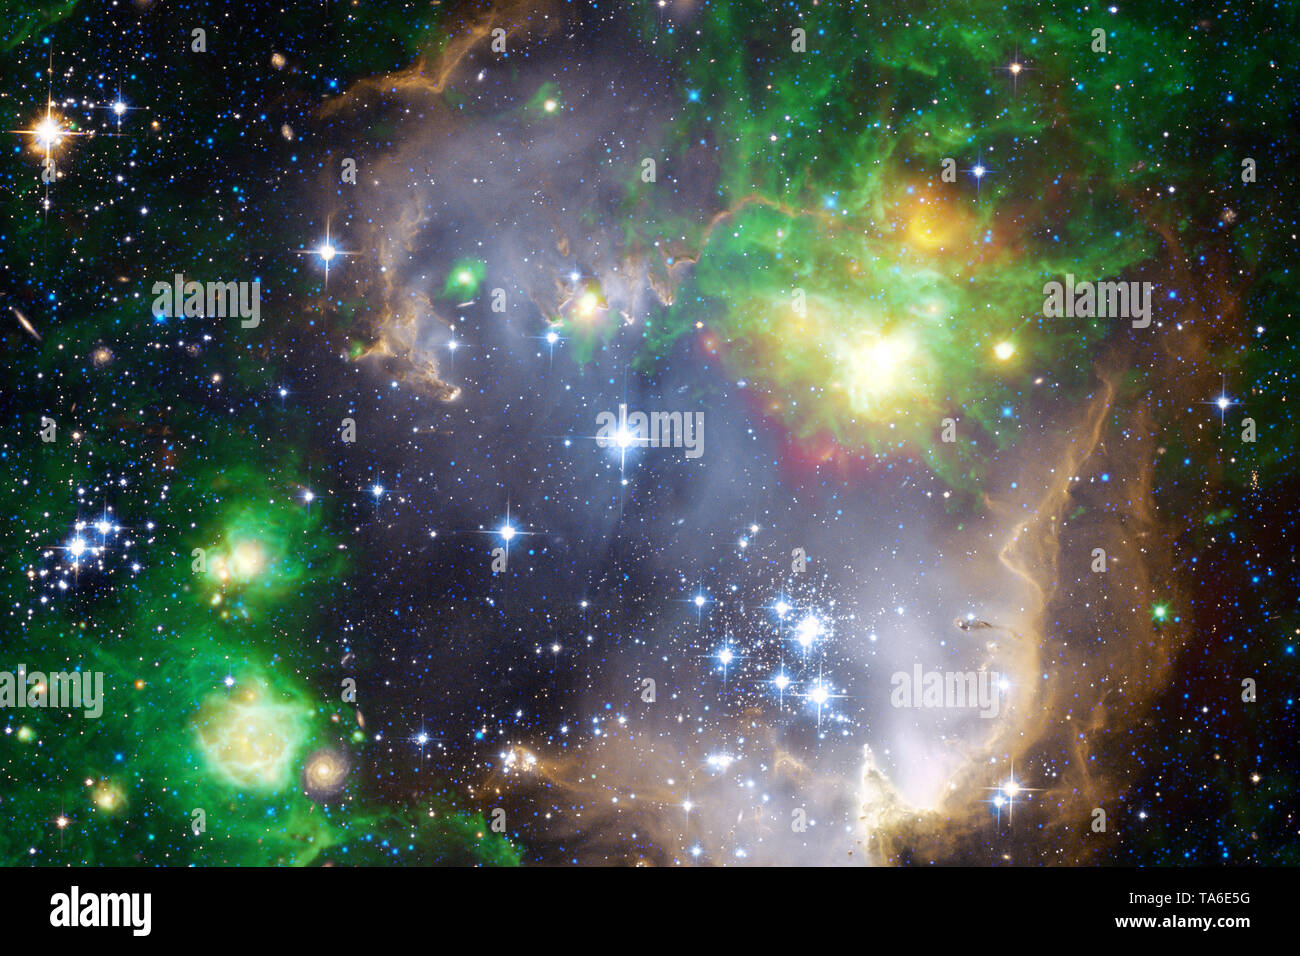 Beautiful nebula and bright stars in outer space, glowing mysterious universe. Elements of this image furnished by NASA - Stock Image